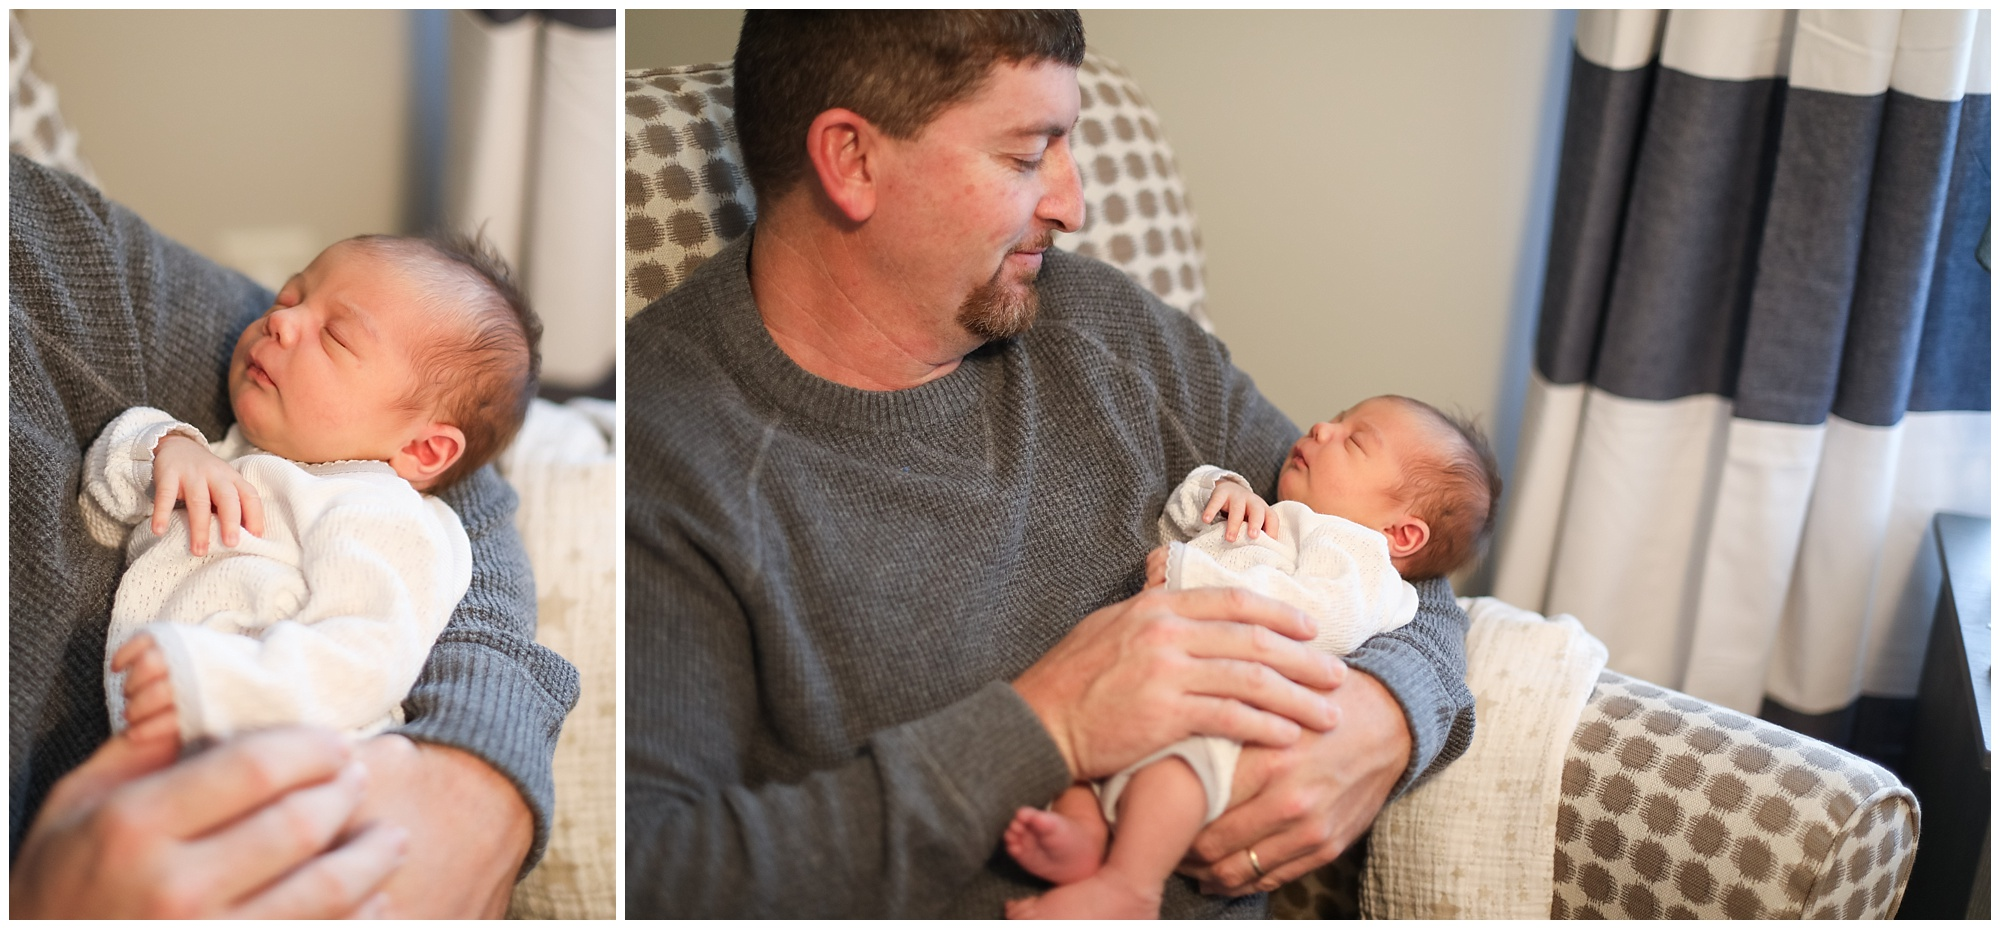 adoring father and newborn son